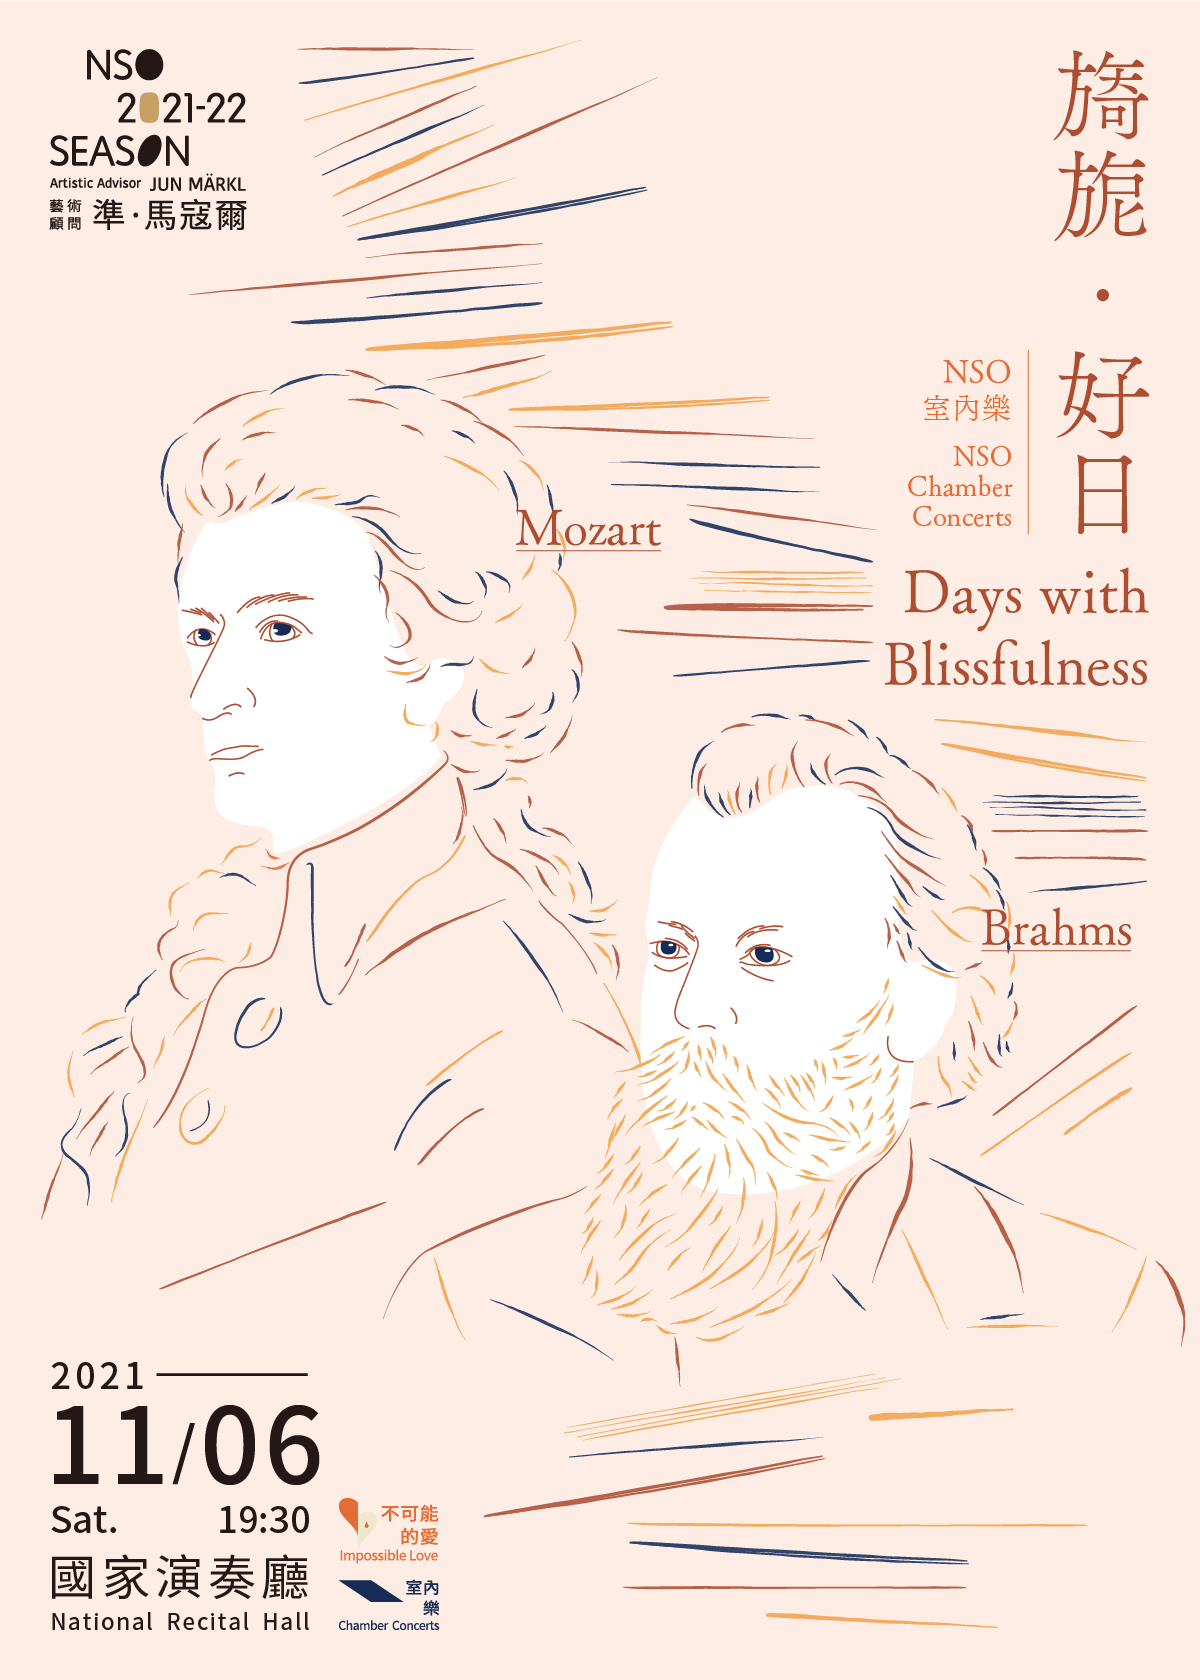 NSO ChamberConcerts- Days with Blissfulness